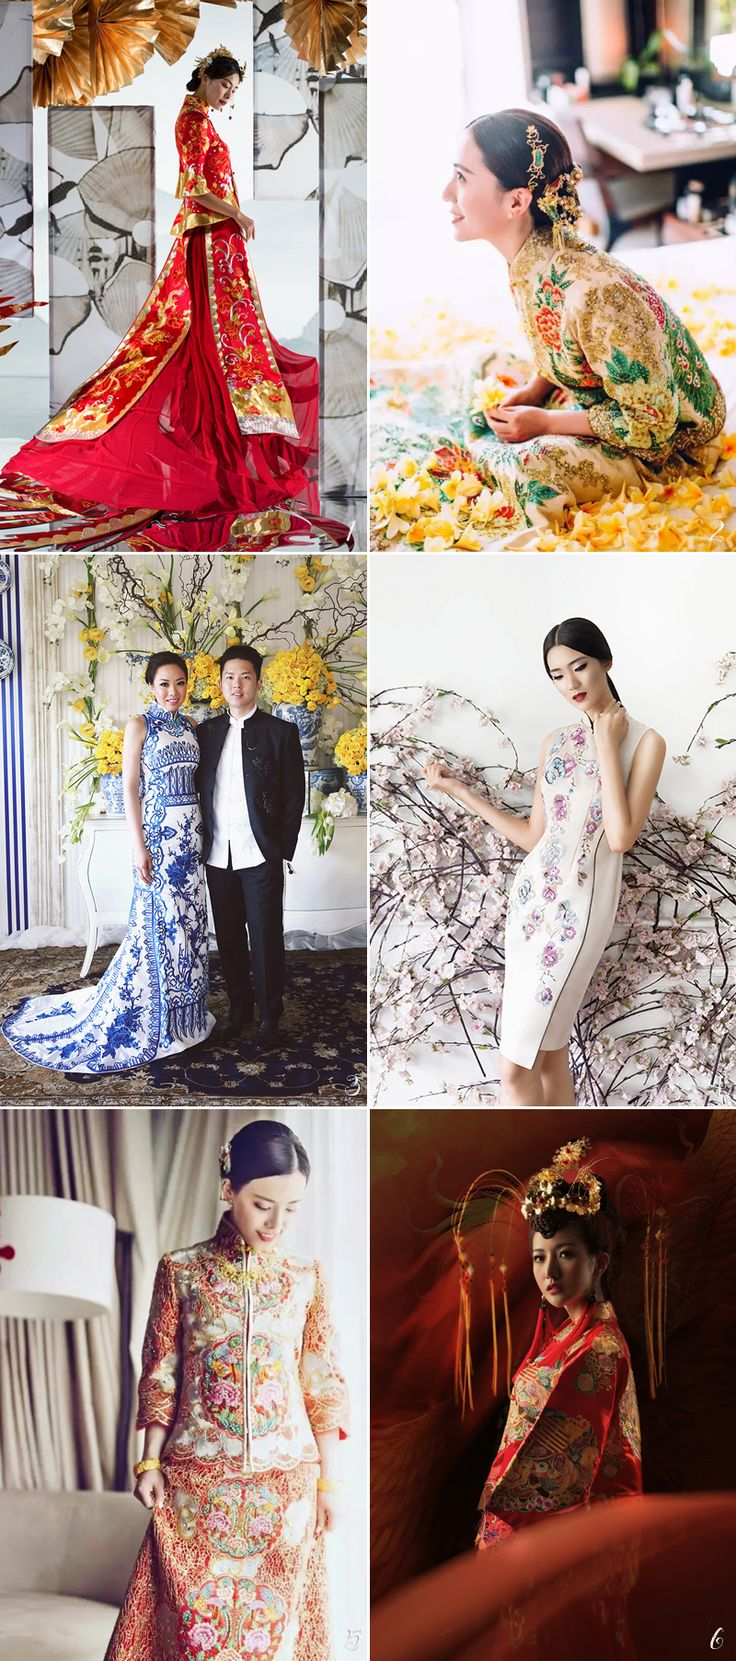 30 Jaw-Droppingly Beautiful Traditional Asian Bridal Gowns With A Modern Twist!